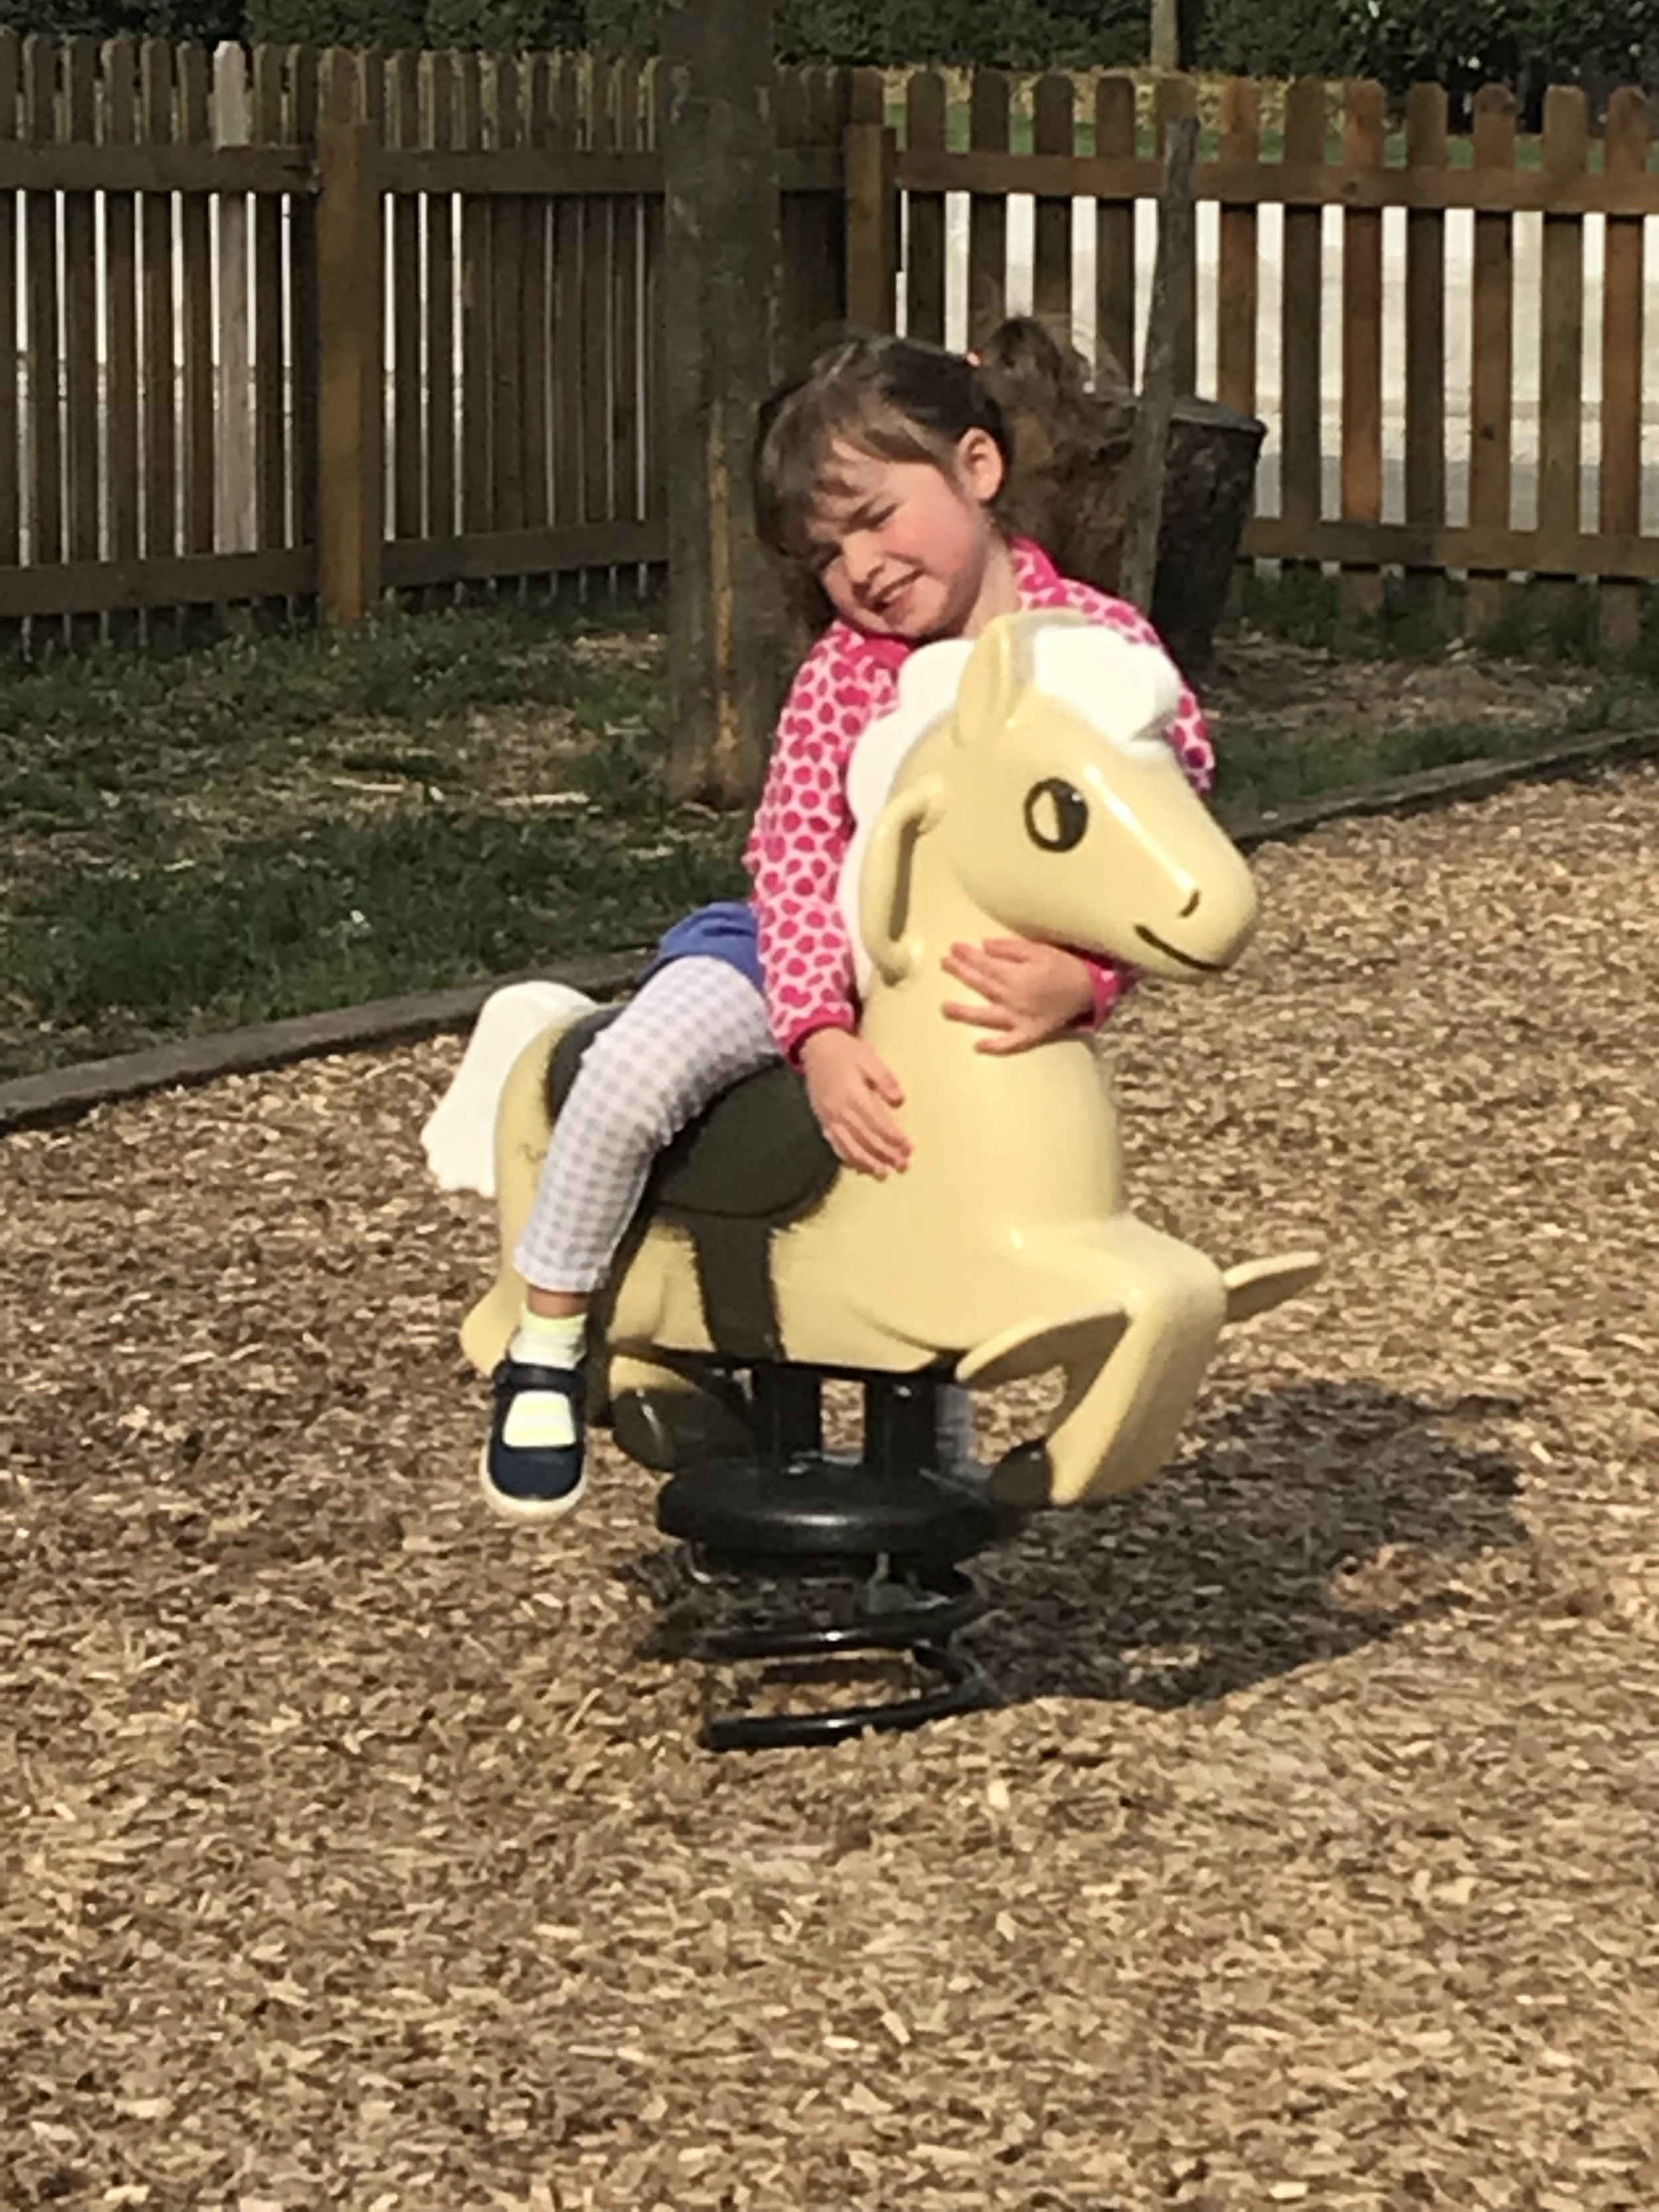 With the beautiful weather, we made a much anticipated trip to the big playground. Annabelle on her horse.